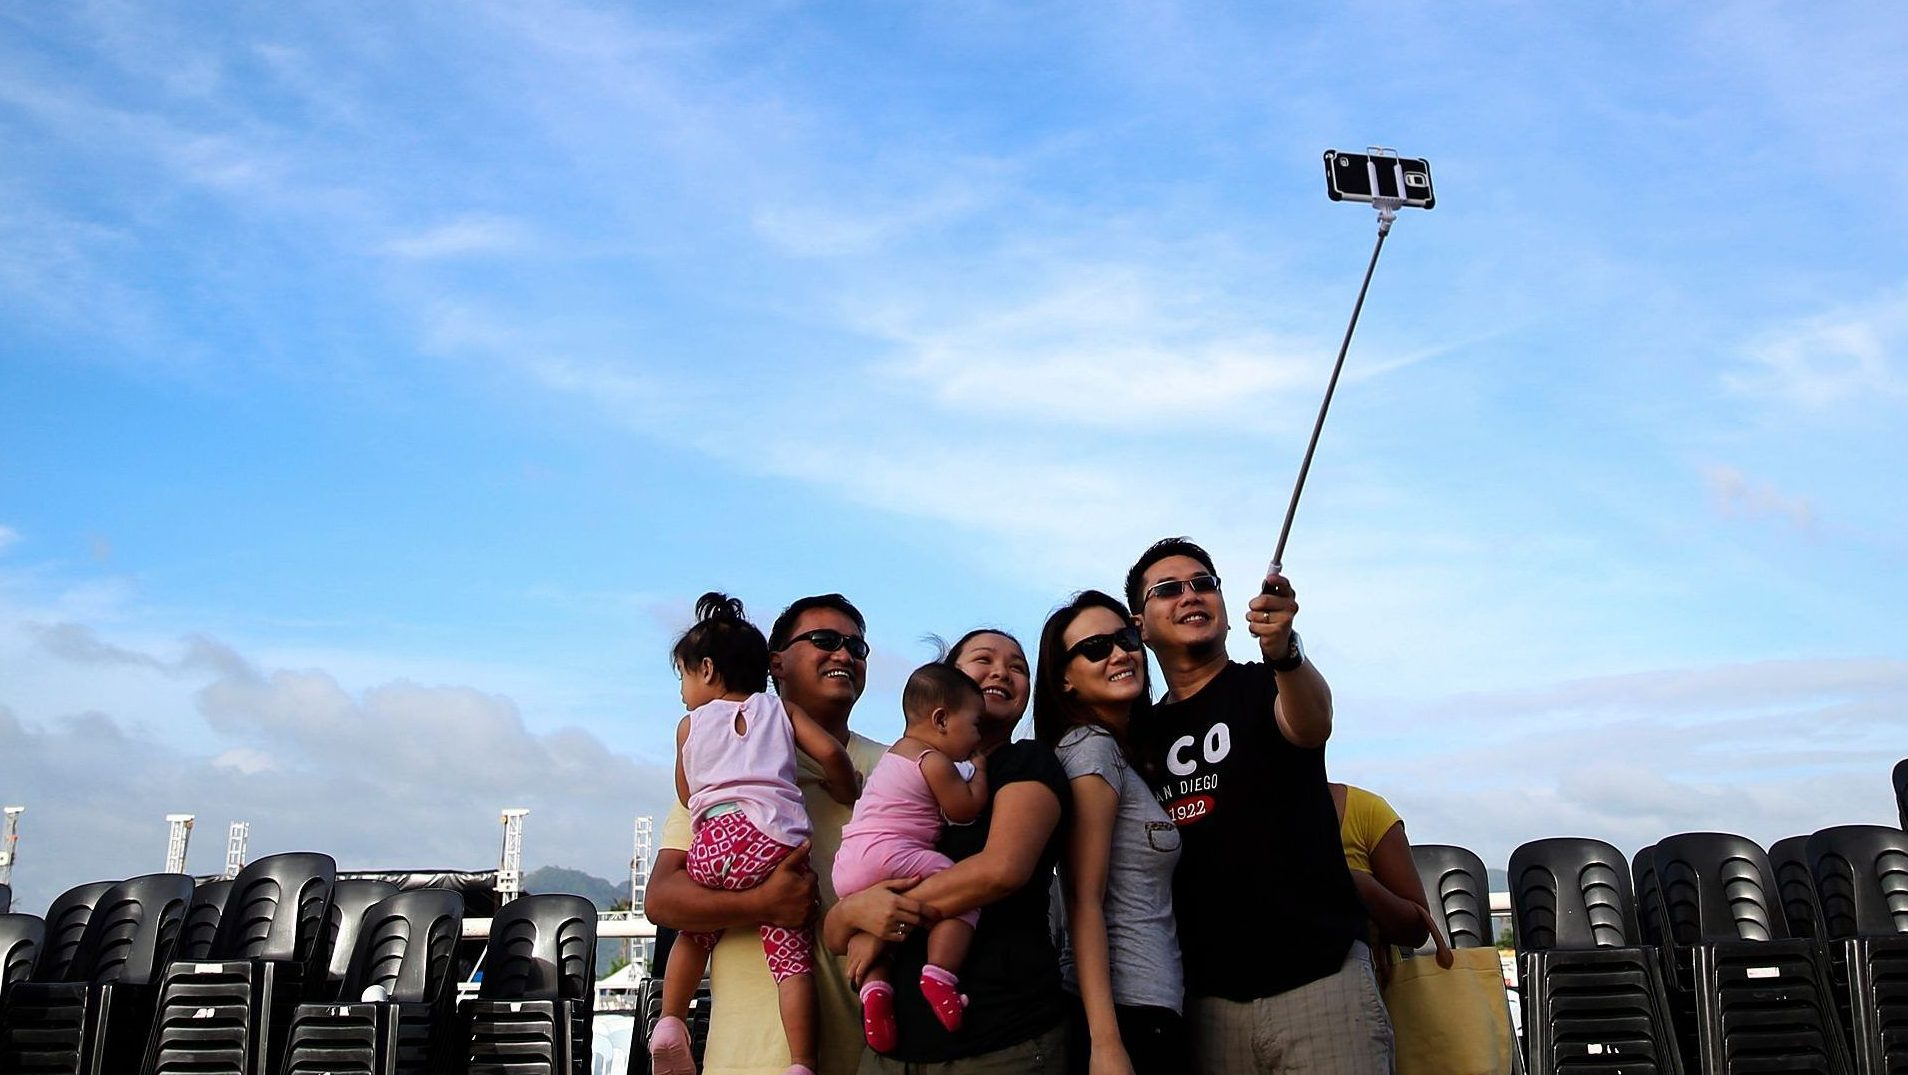 """People take picture of themselves using a """"selfie stick"""" near the altar from which Pope Francis will hold a mass at Tacloban's airport, January 16, 2015. On his first visit to Asia's largest Catholic nation, the pontiff will visit the central province of Leyte, which is still struggling to recover from Typhoon Haiyan that killed 6,300 people in 2013. About two million people are expected to attend an open-air mass on Saturday at Tacloban City airport, almost completely destroyed by Haiyan. REUTERS/Damir Sagolj (PHILIPPINES - Tags: RELIGION SOCIETY) - GM1EB1G10VH01"""